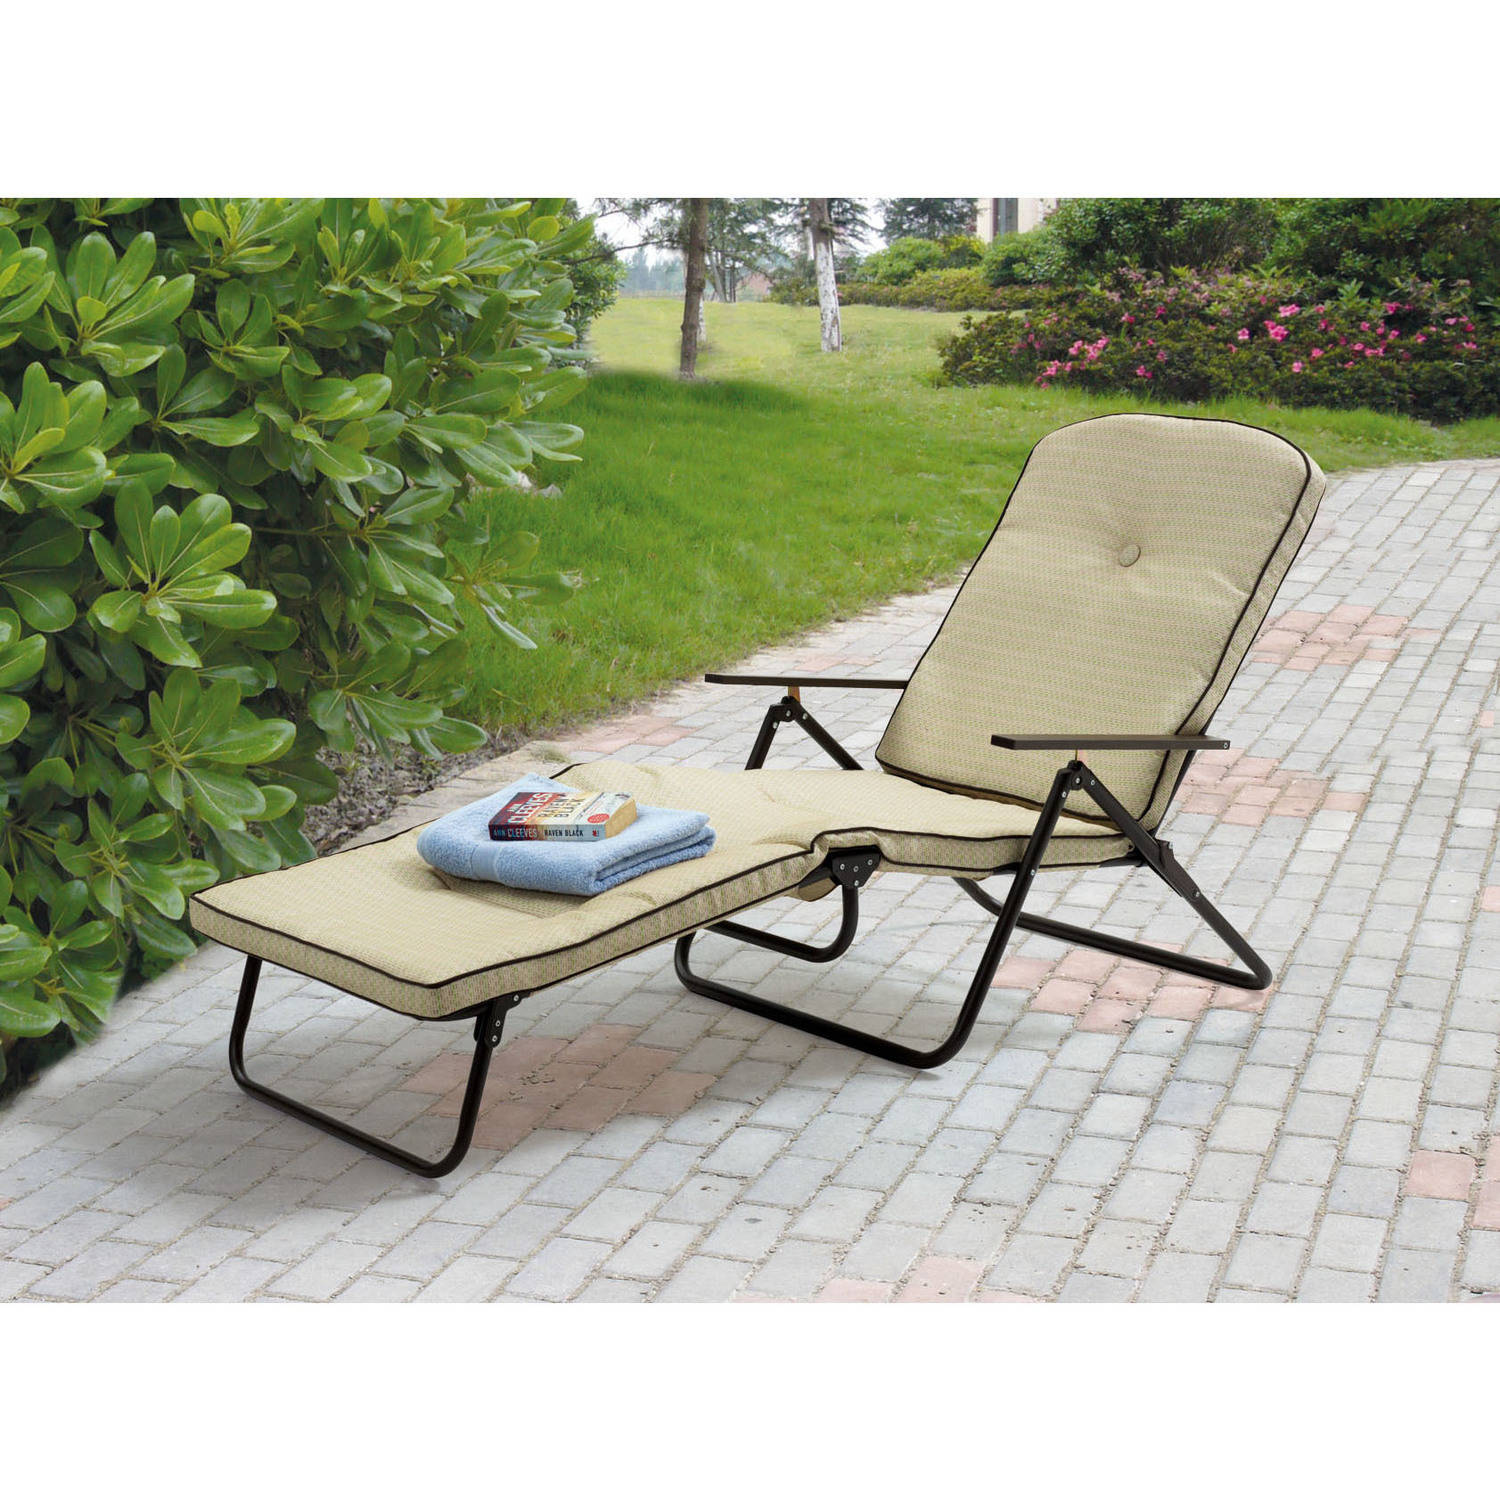 Mainstays Sand Dune Outdoor Padded Folding Chaise Lounge, Tan